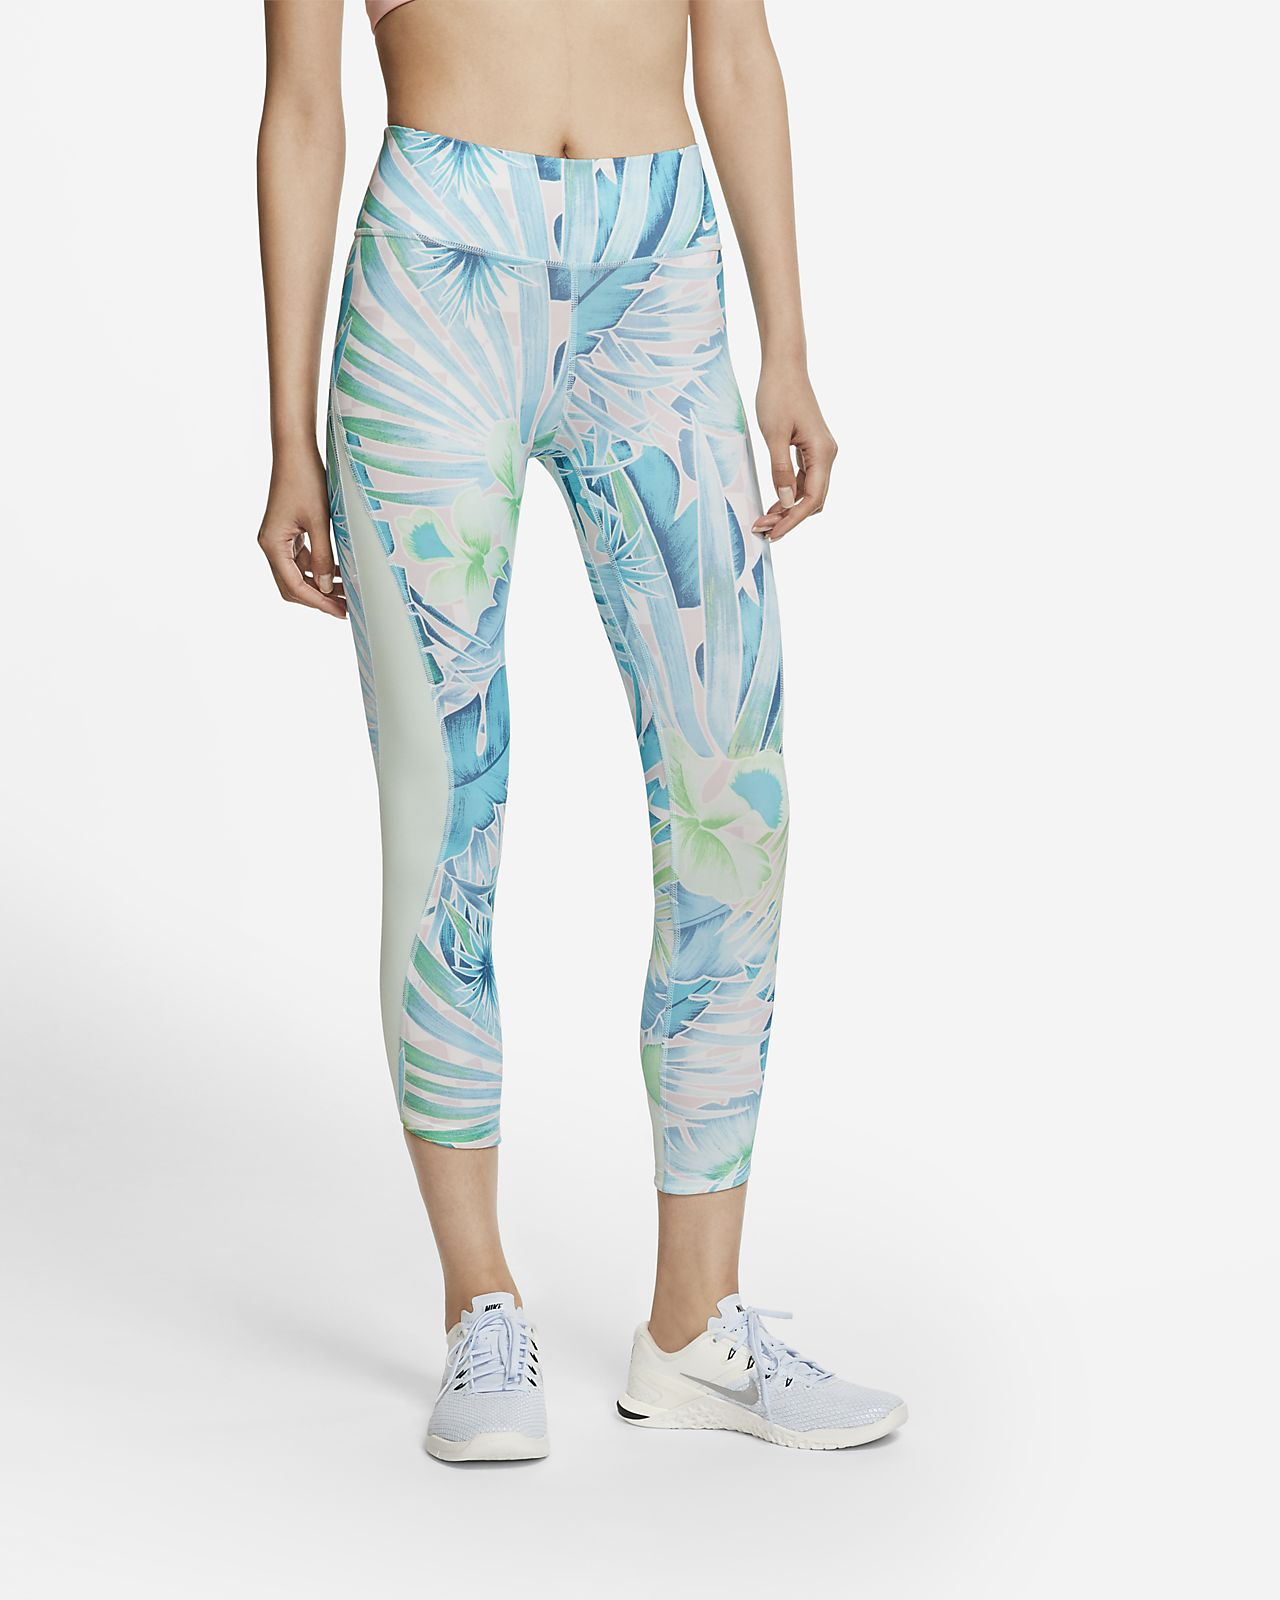 Nike One Women's Printed 7/8 Tights